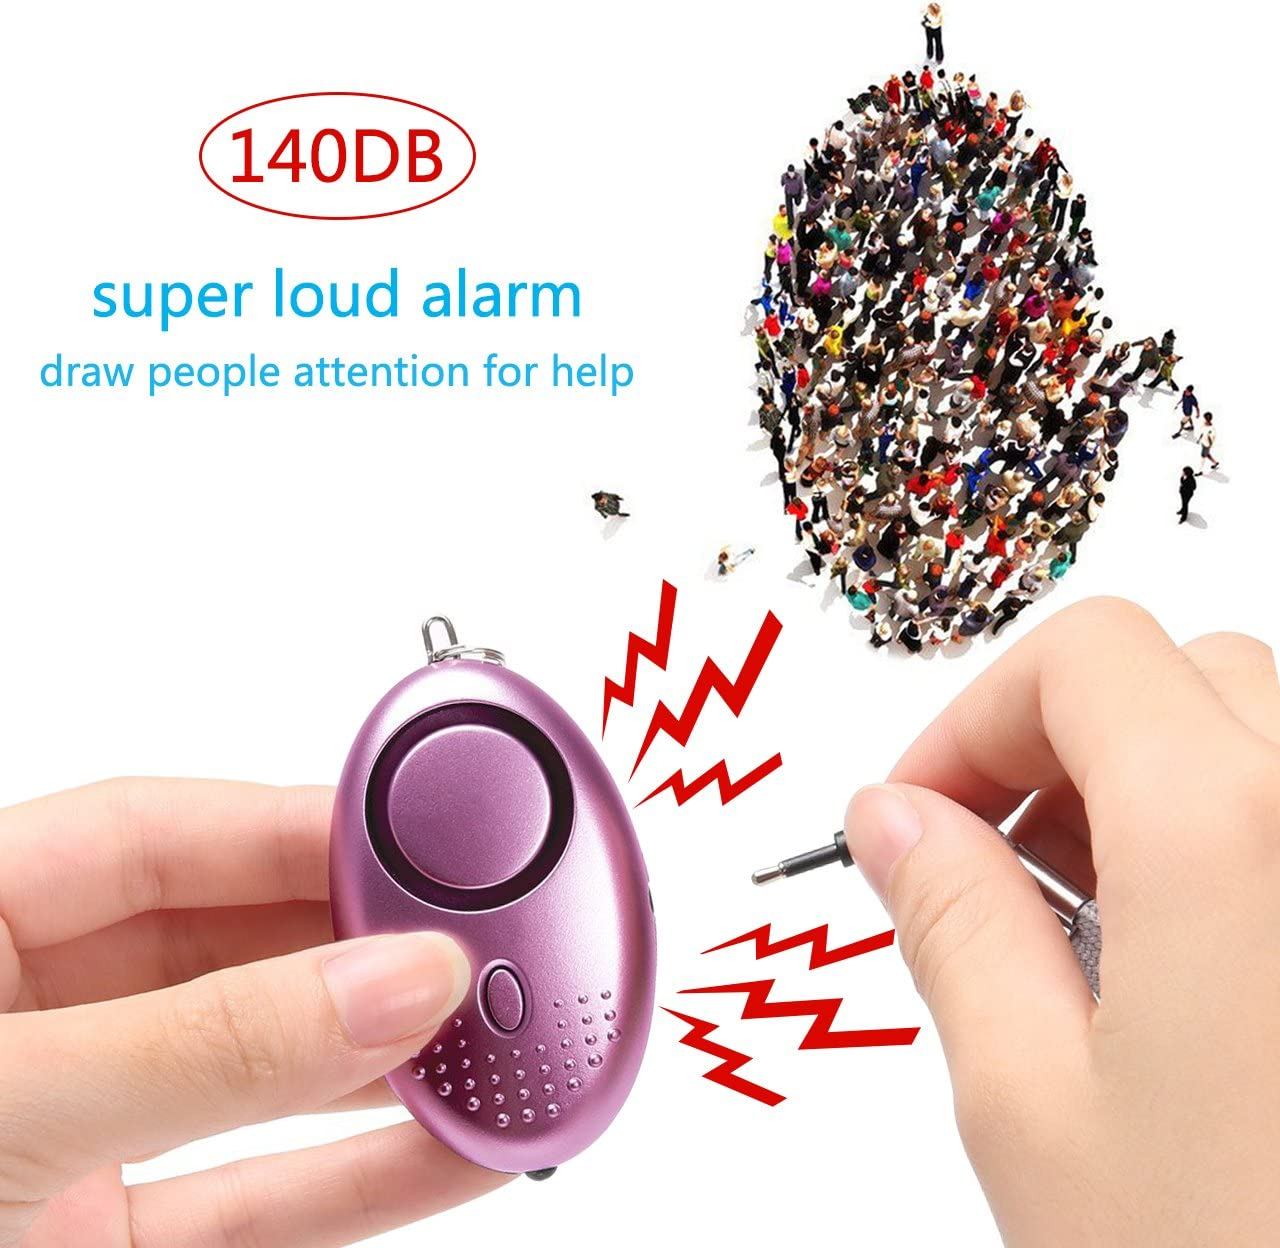 140DB Emergency Self-Defense Security Alarm Keychain with LED Light for Women Kids and Elders Blue Personal Alarm for Women